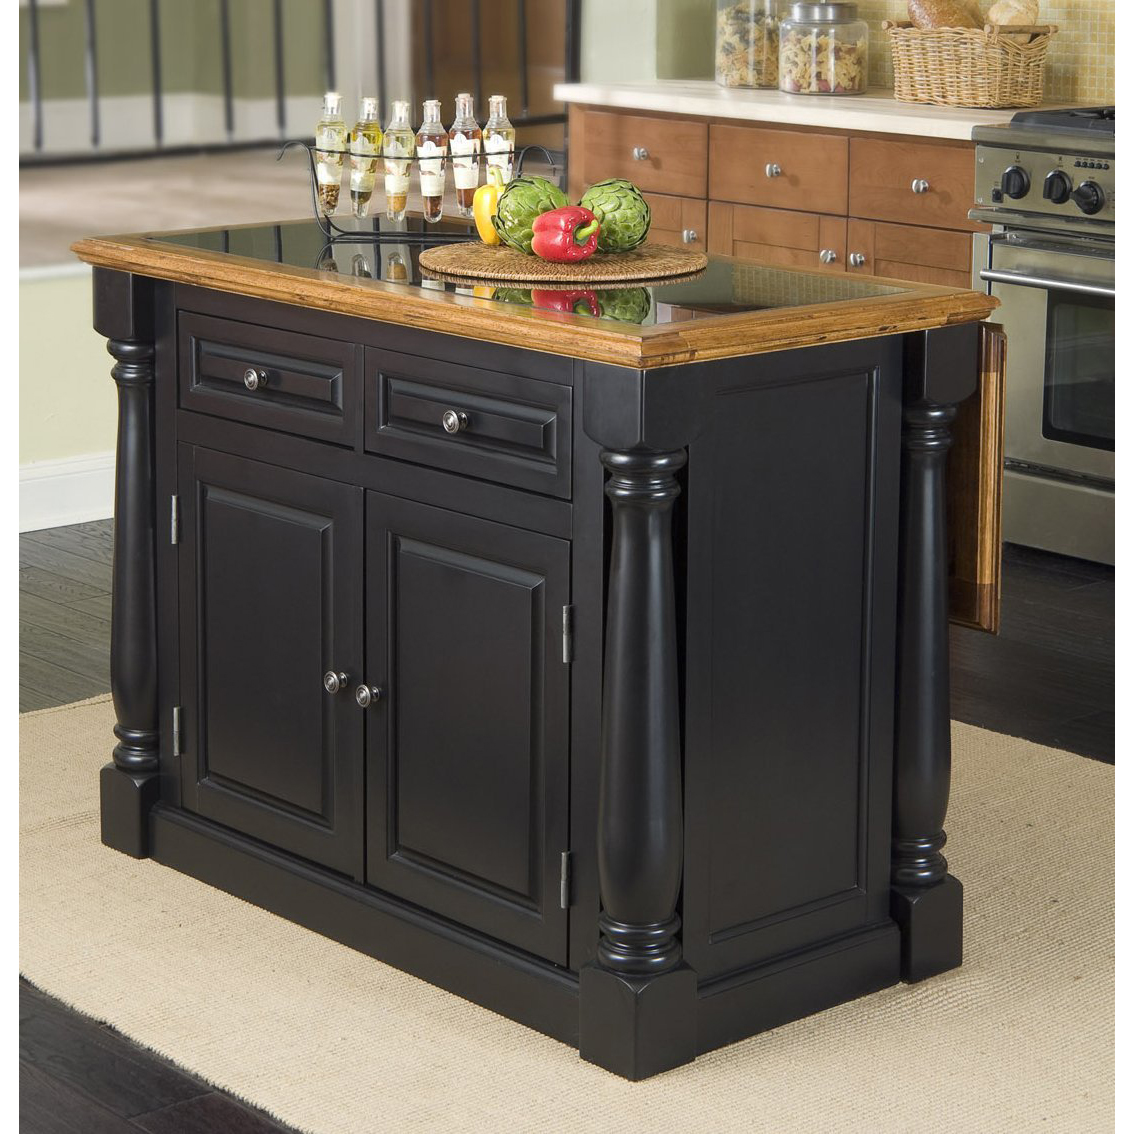 Kitchen Carts Islands & Utility Tables Top 10 Best Kitchen Islands, Carts, Centers & Utility Tables